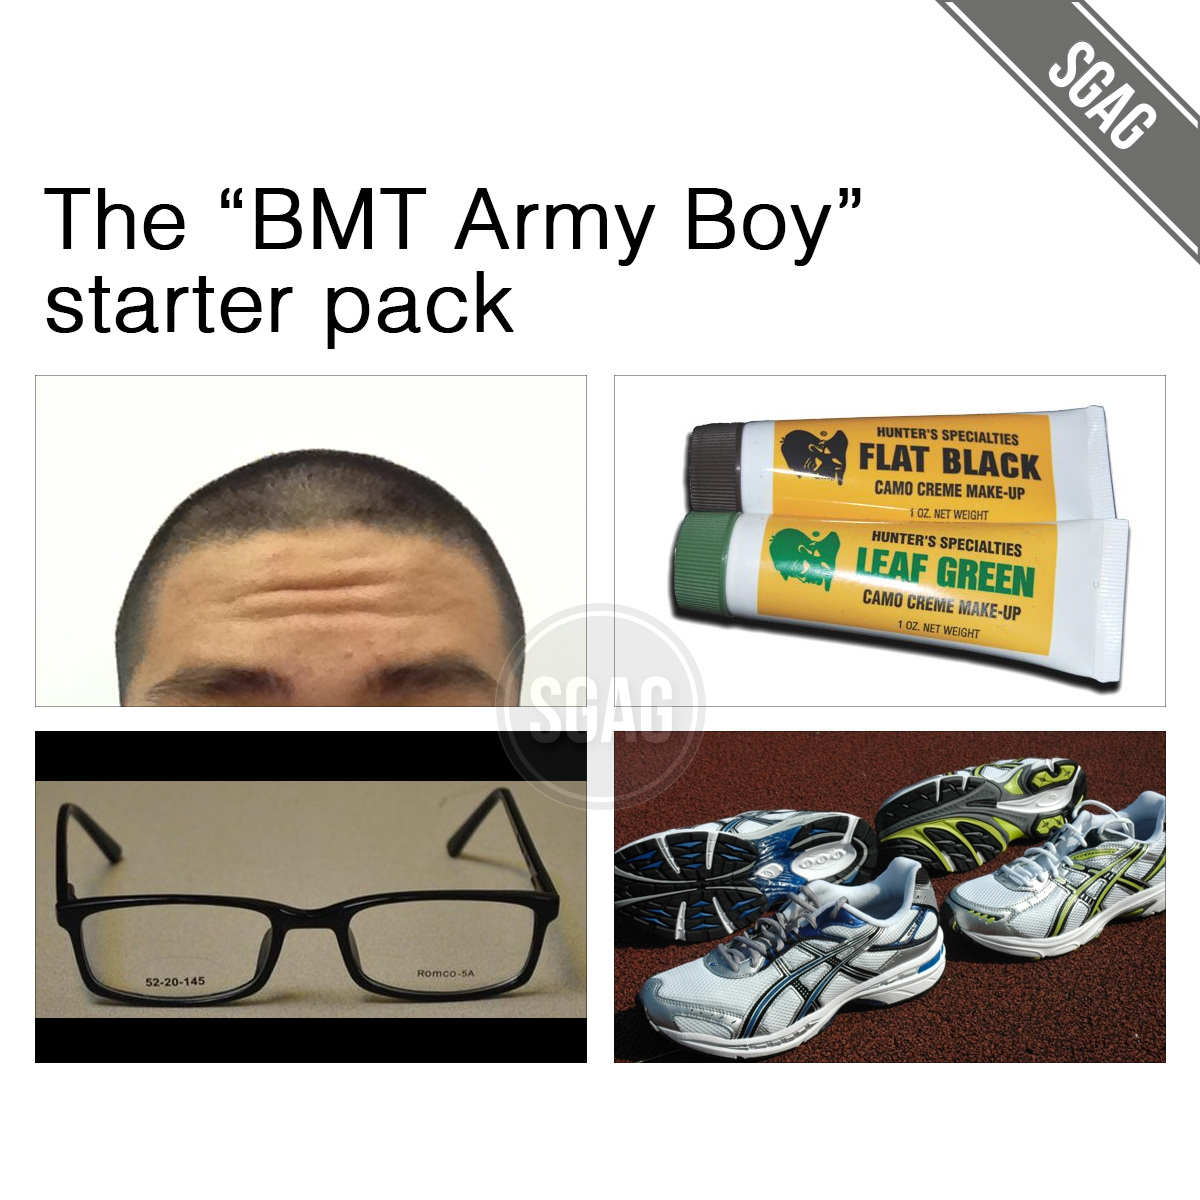 9367_original_THUMBNAIL_starterpack1?1478245019 lolol someone finally did a sg version of the starter pack memes!